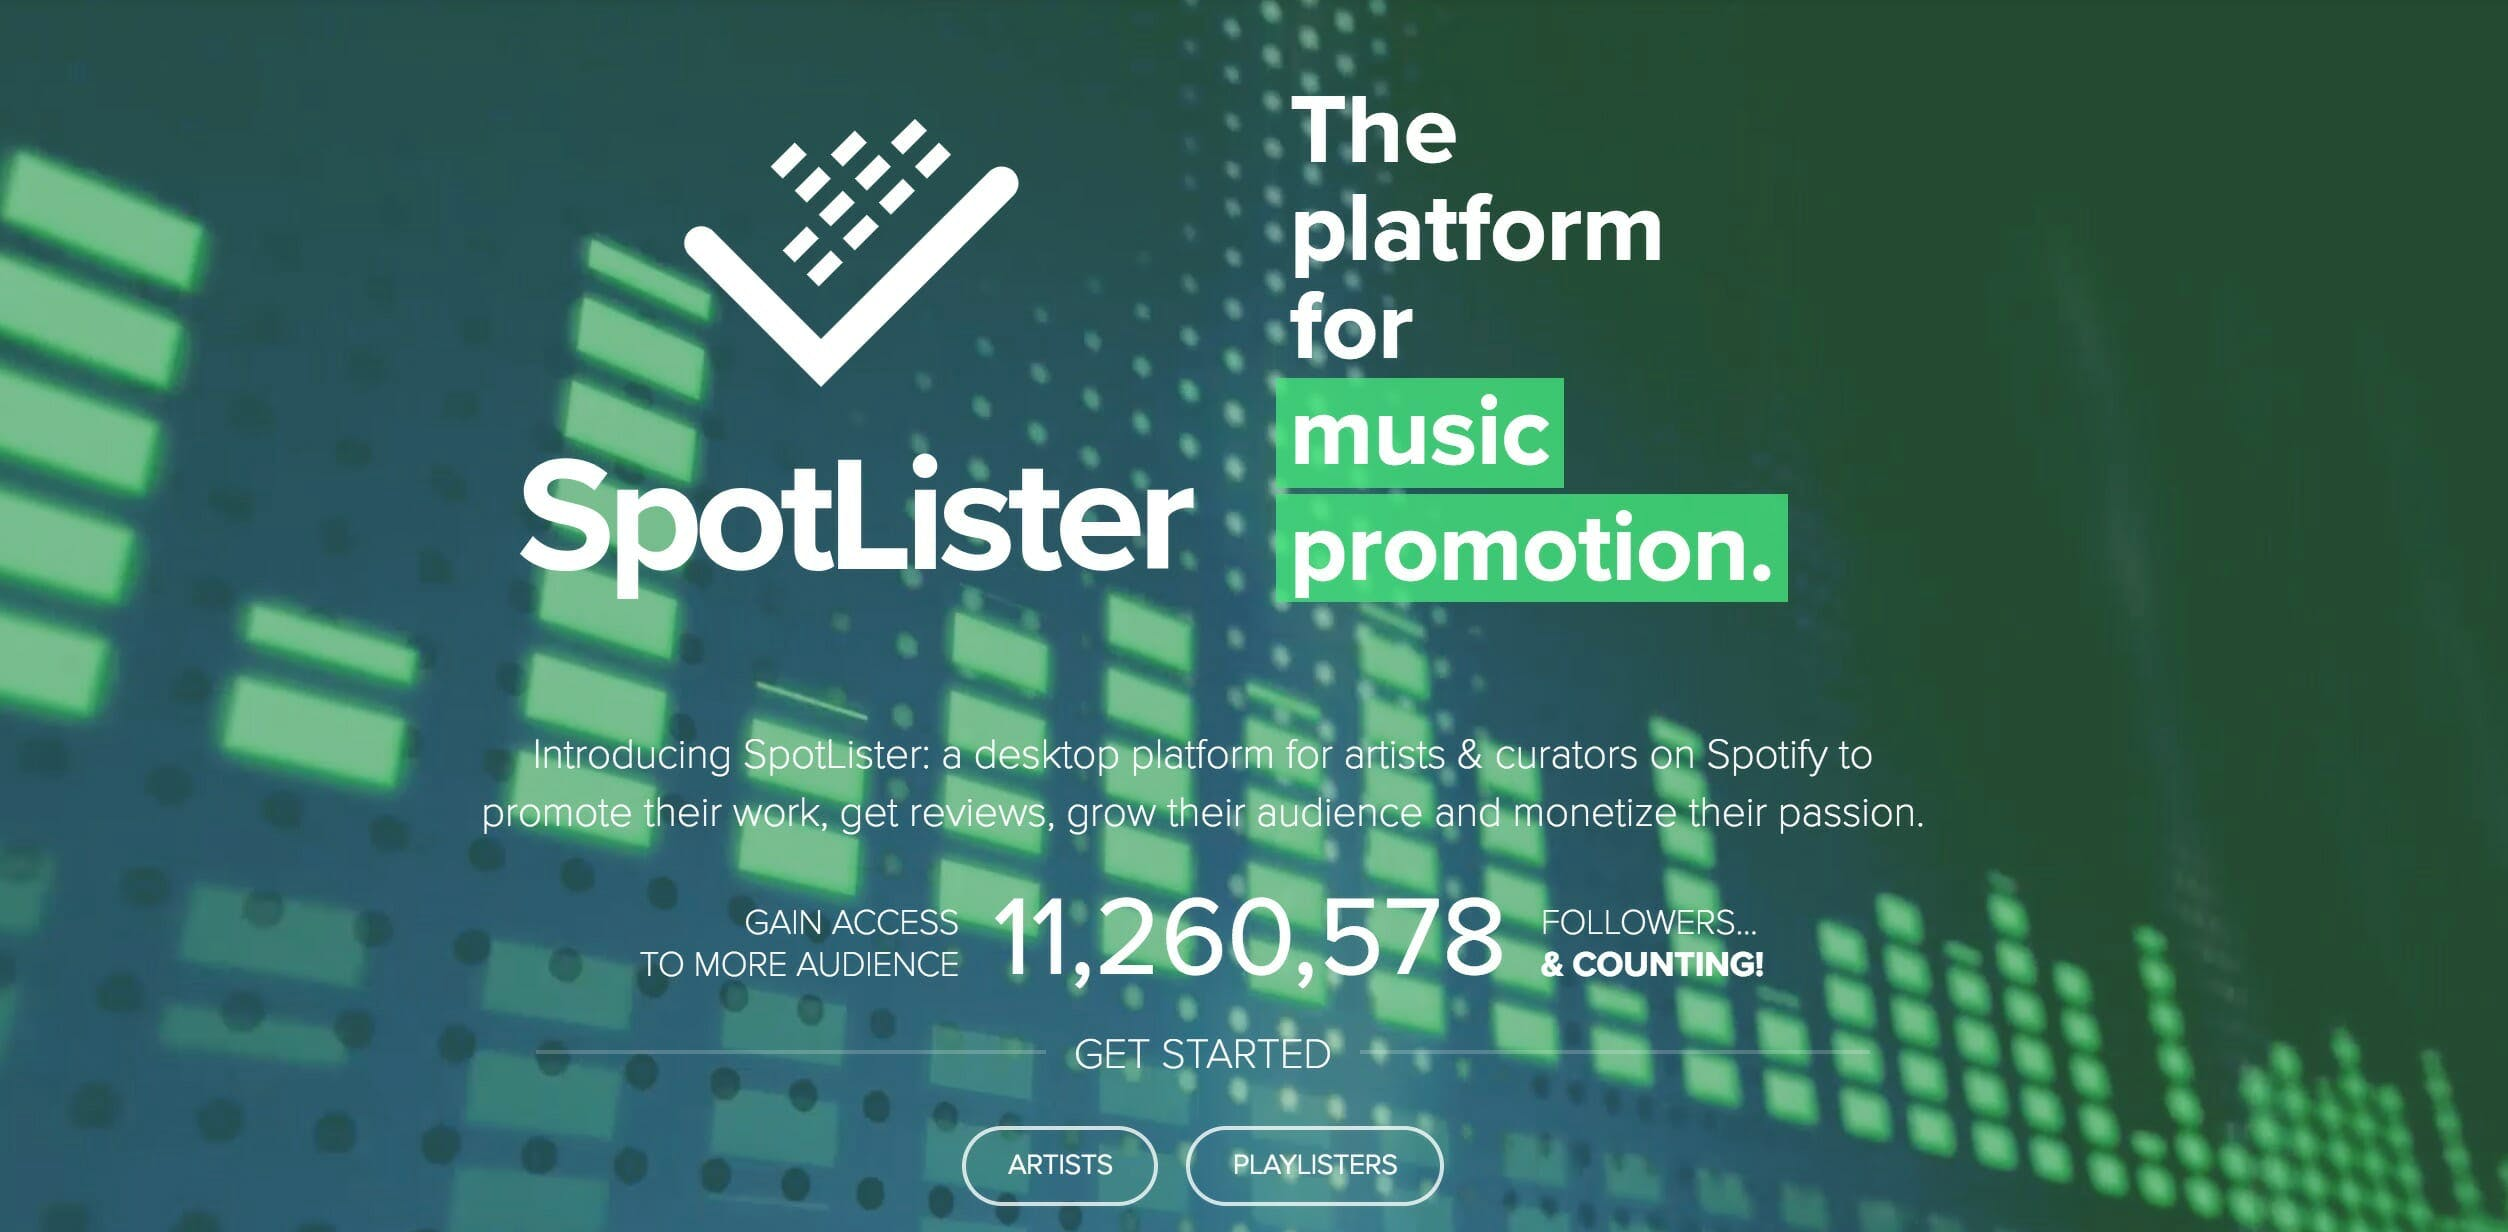 how to buy Spotify followers - SpotLister